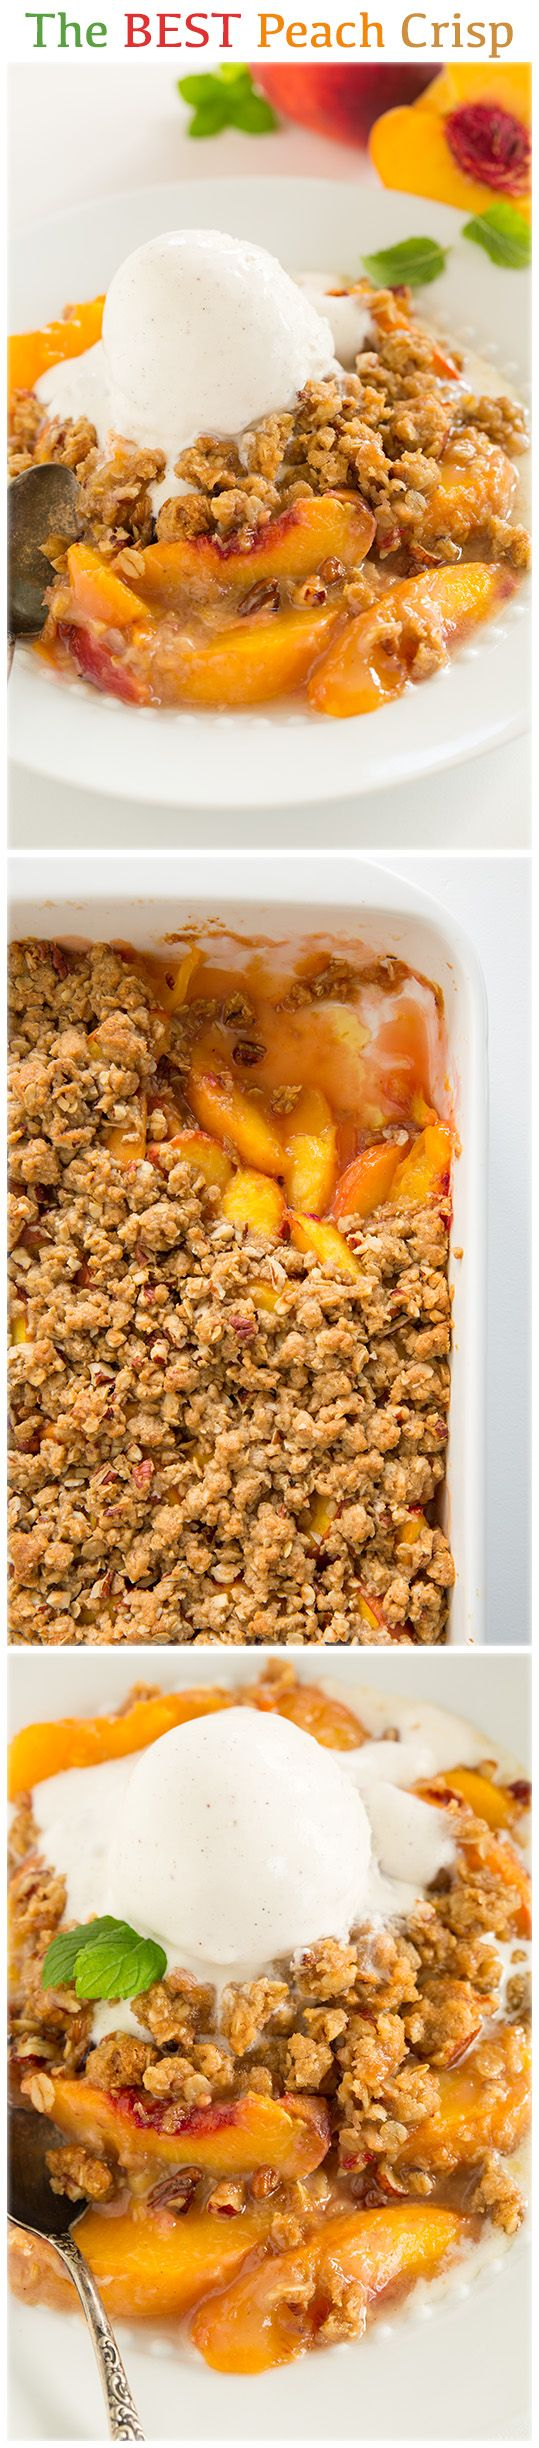 Peach Crisp - this is the BEST peach crisp I've ever had! Love this recipe!